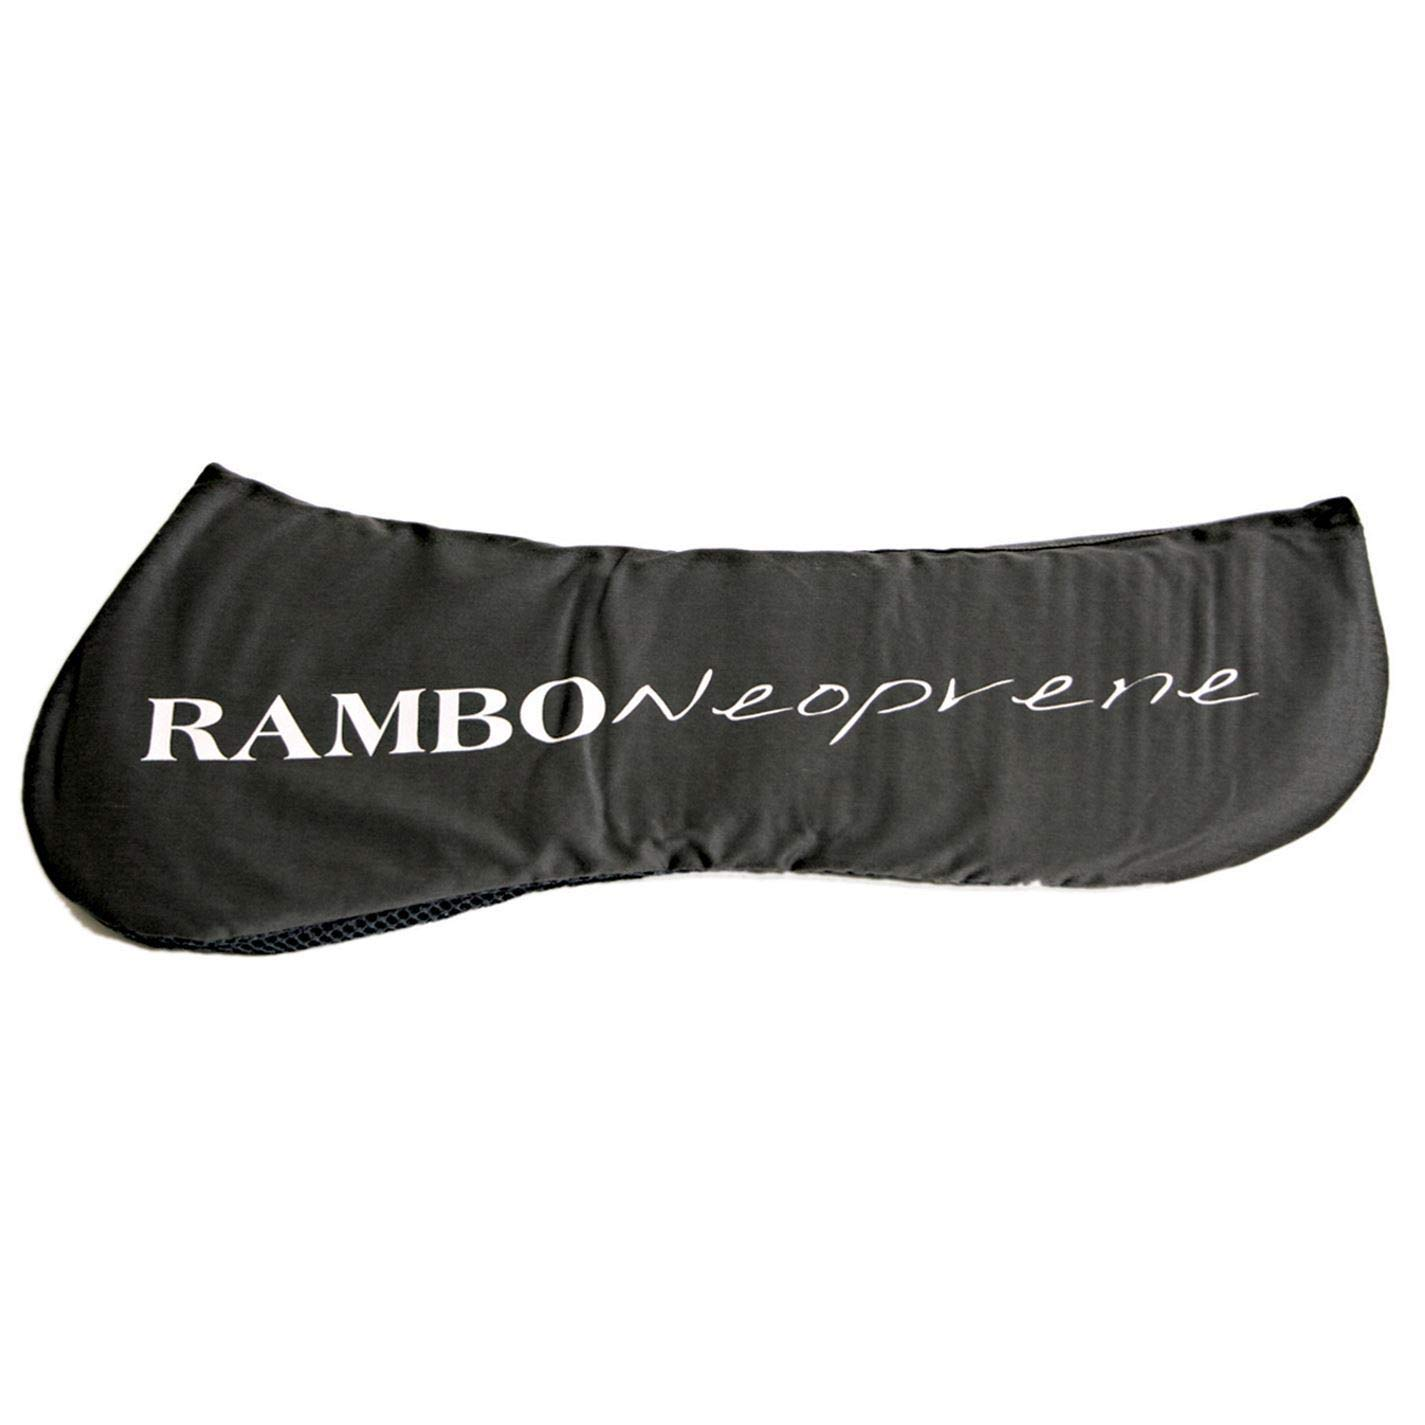 Black Full Black Full Rambo Neoprene Half Saddle Pad Numnah Cloth Horse Riding Tack